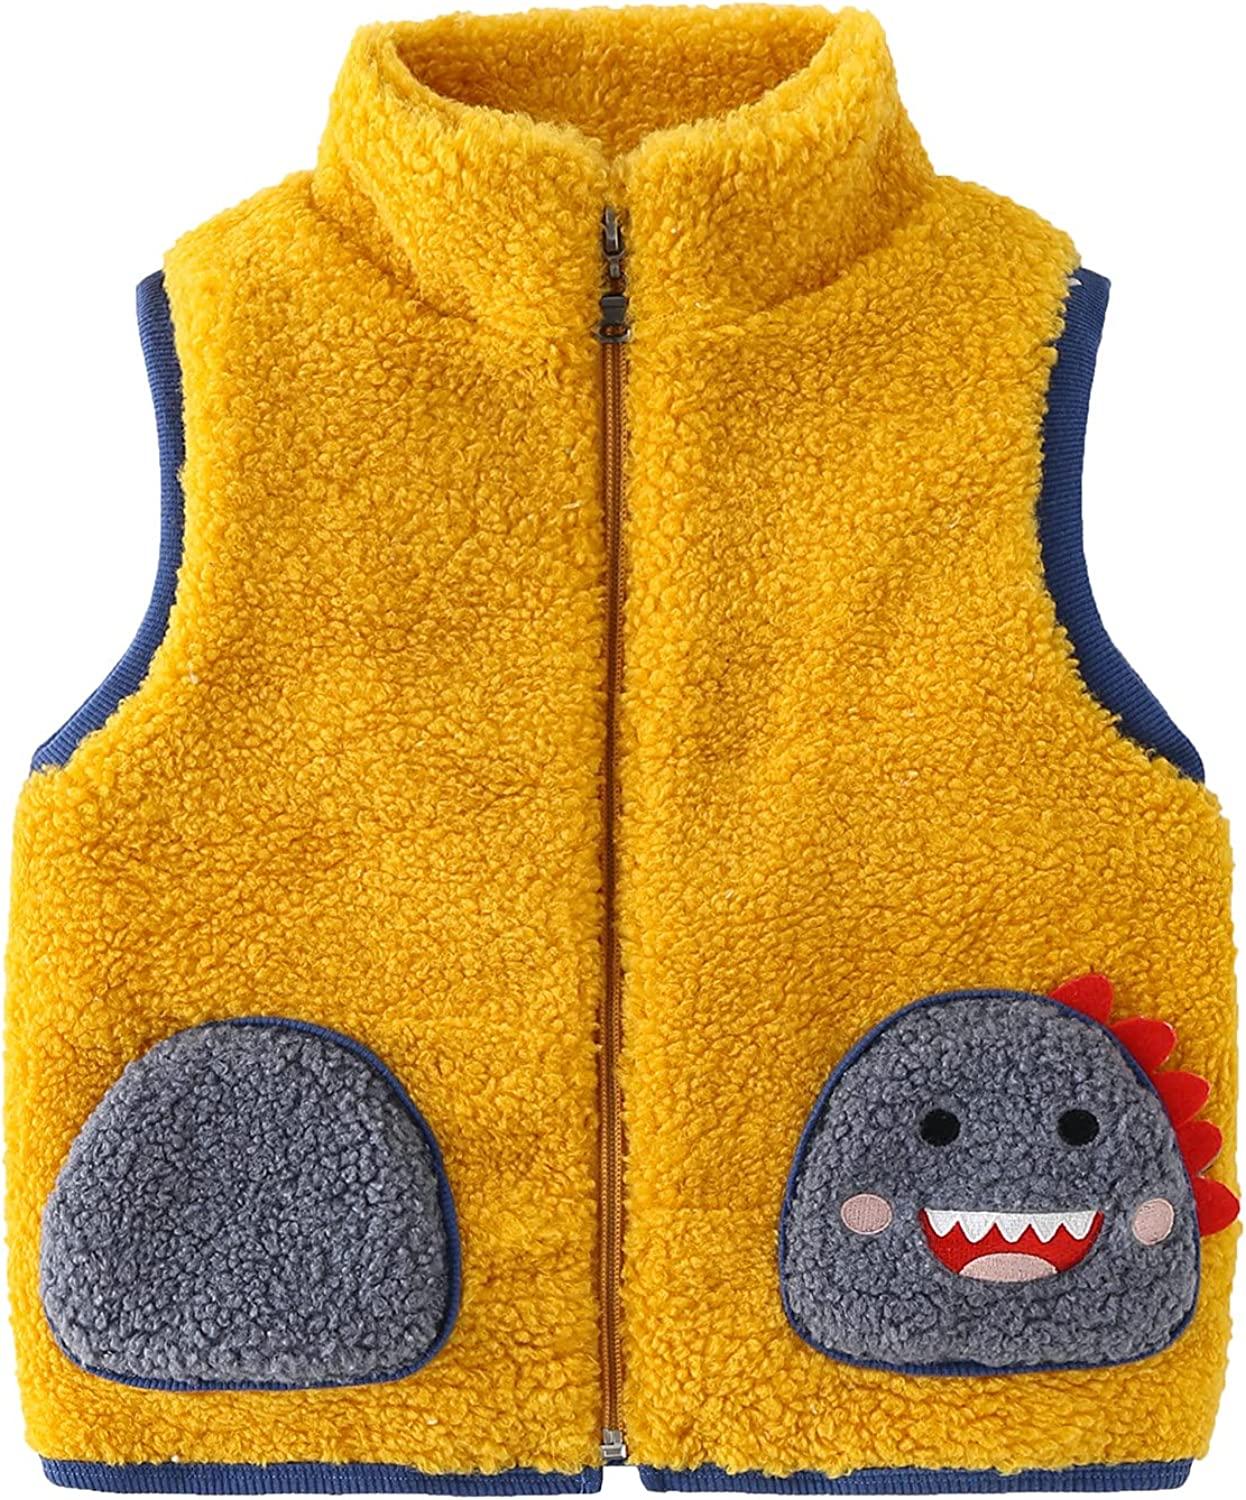 In stock Lobmouse Baby Winter Gilets Toddler Girl Boy Fleece Vest Waistco Manufacturer direct delivery